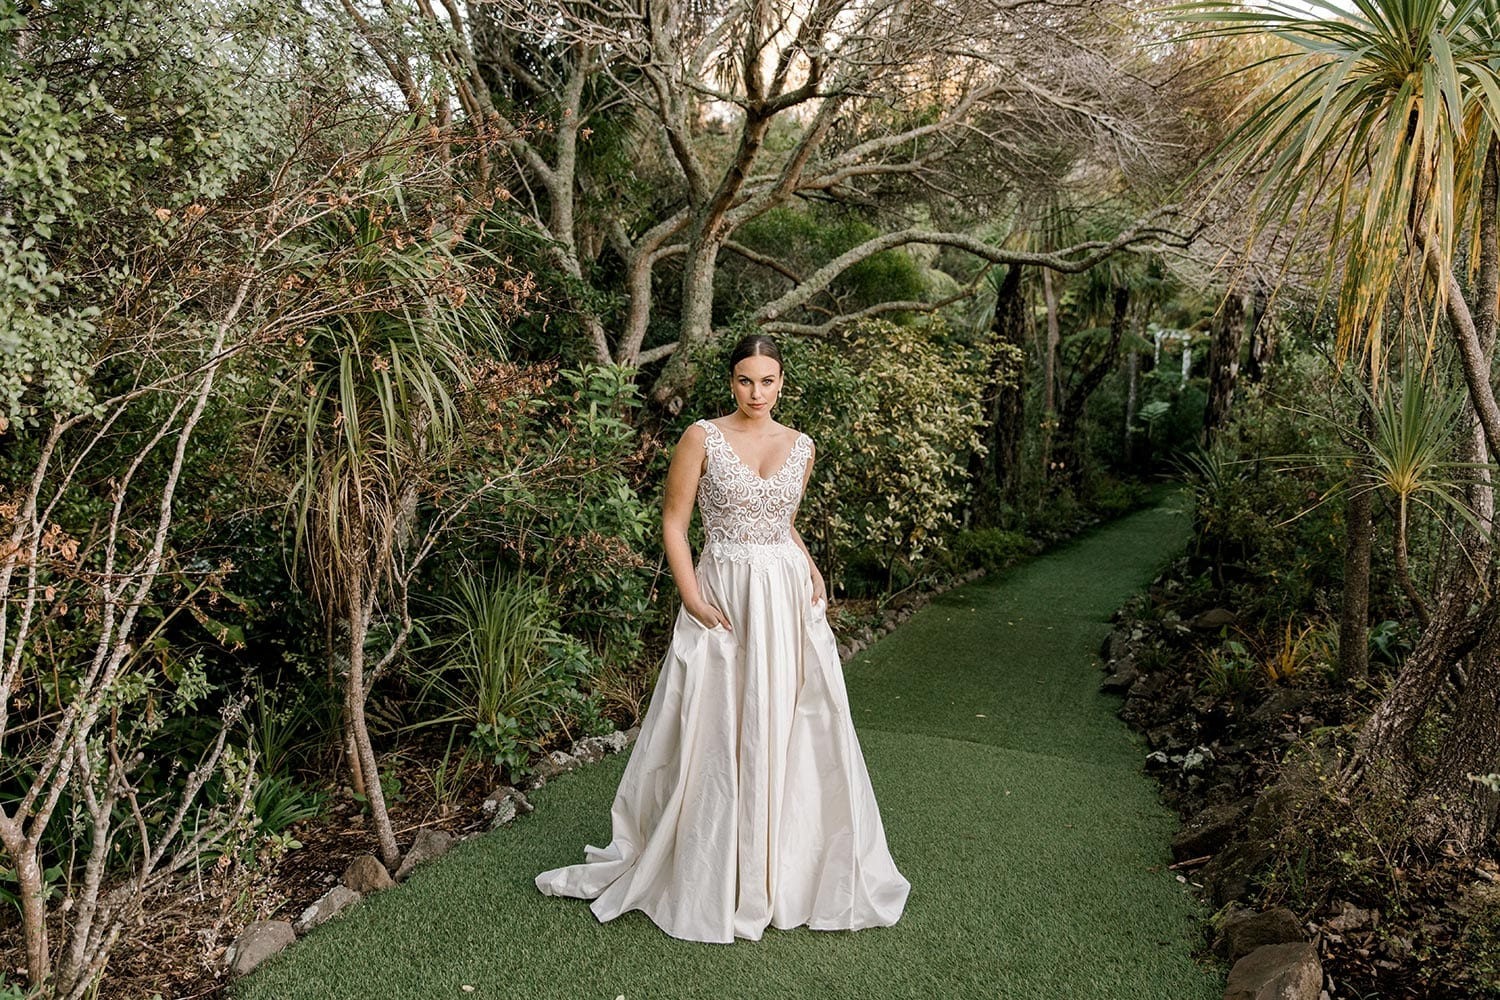 Ashleigh Wedding Dress from Vinka Design. Wedding dress with semi-sheer, richly embroidered fitted bodice on a nude base adorned with guipure lace. Dramatic silk dupion full skirt with side pockets. Full length dress portrait, photographed at Tui Hills by Emmaline Photography.